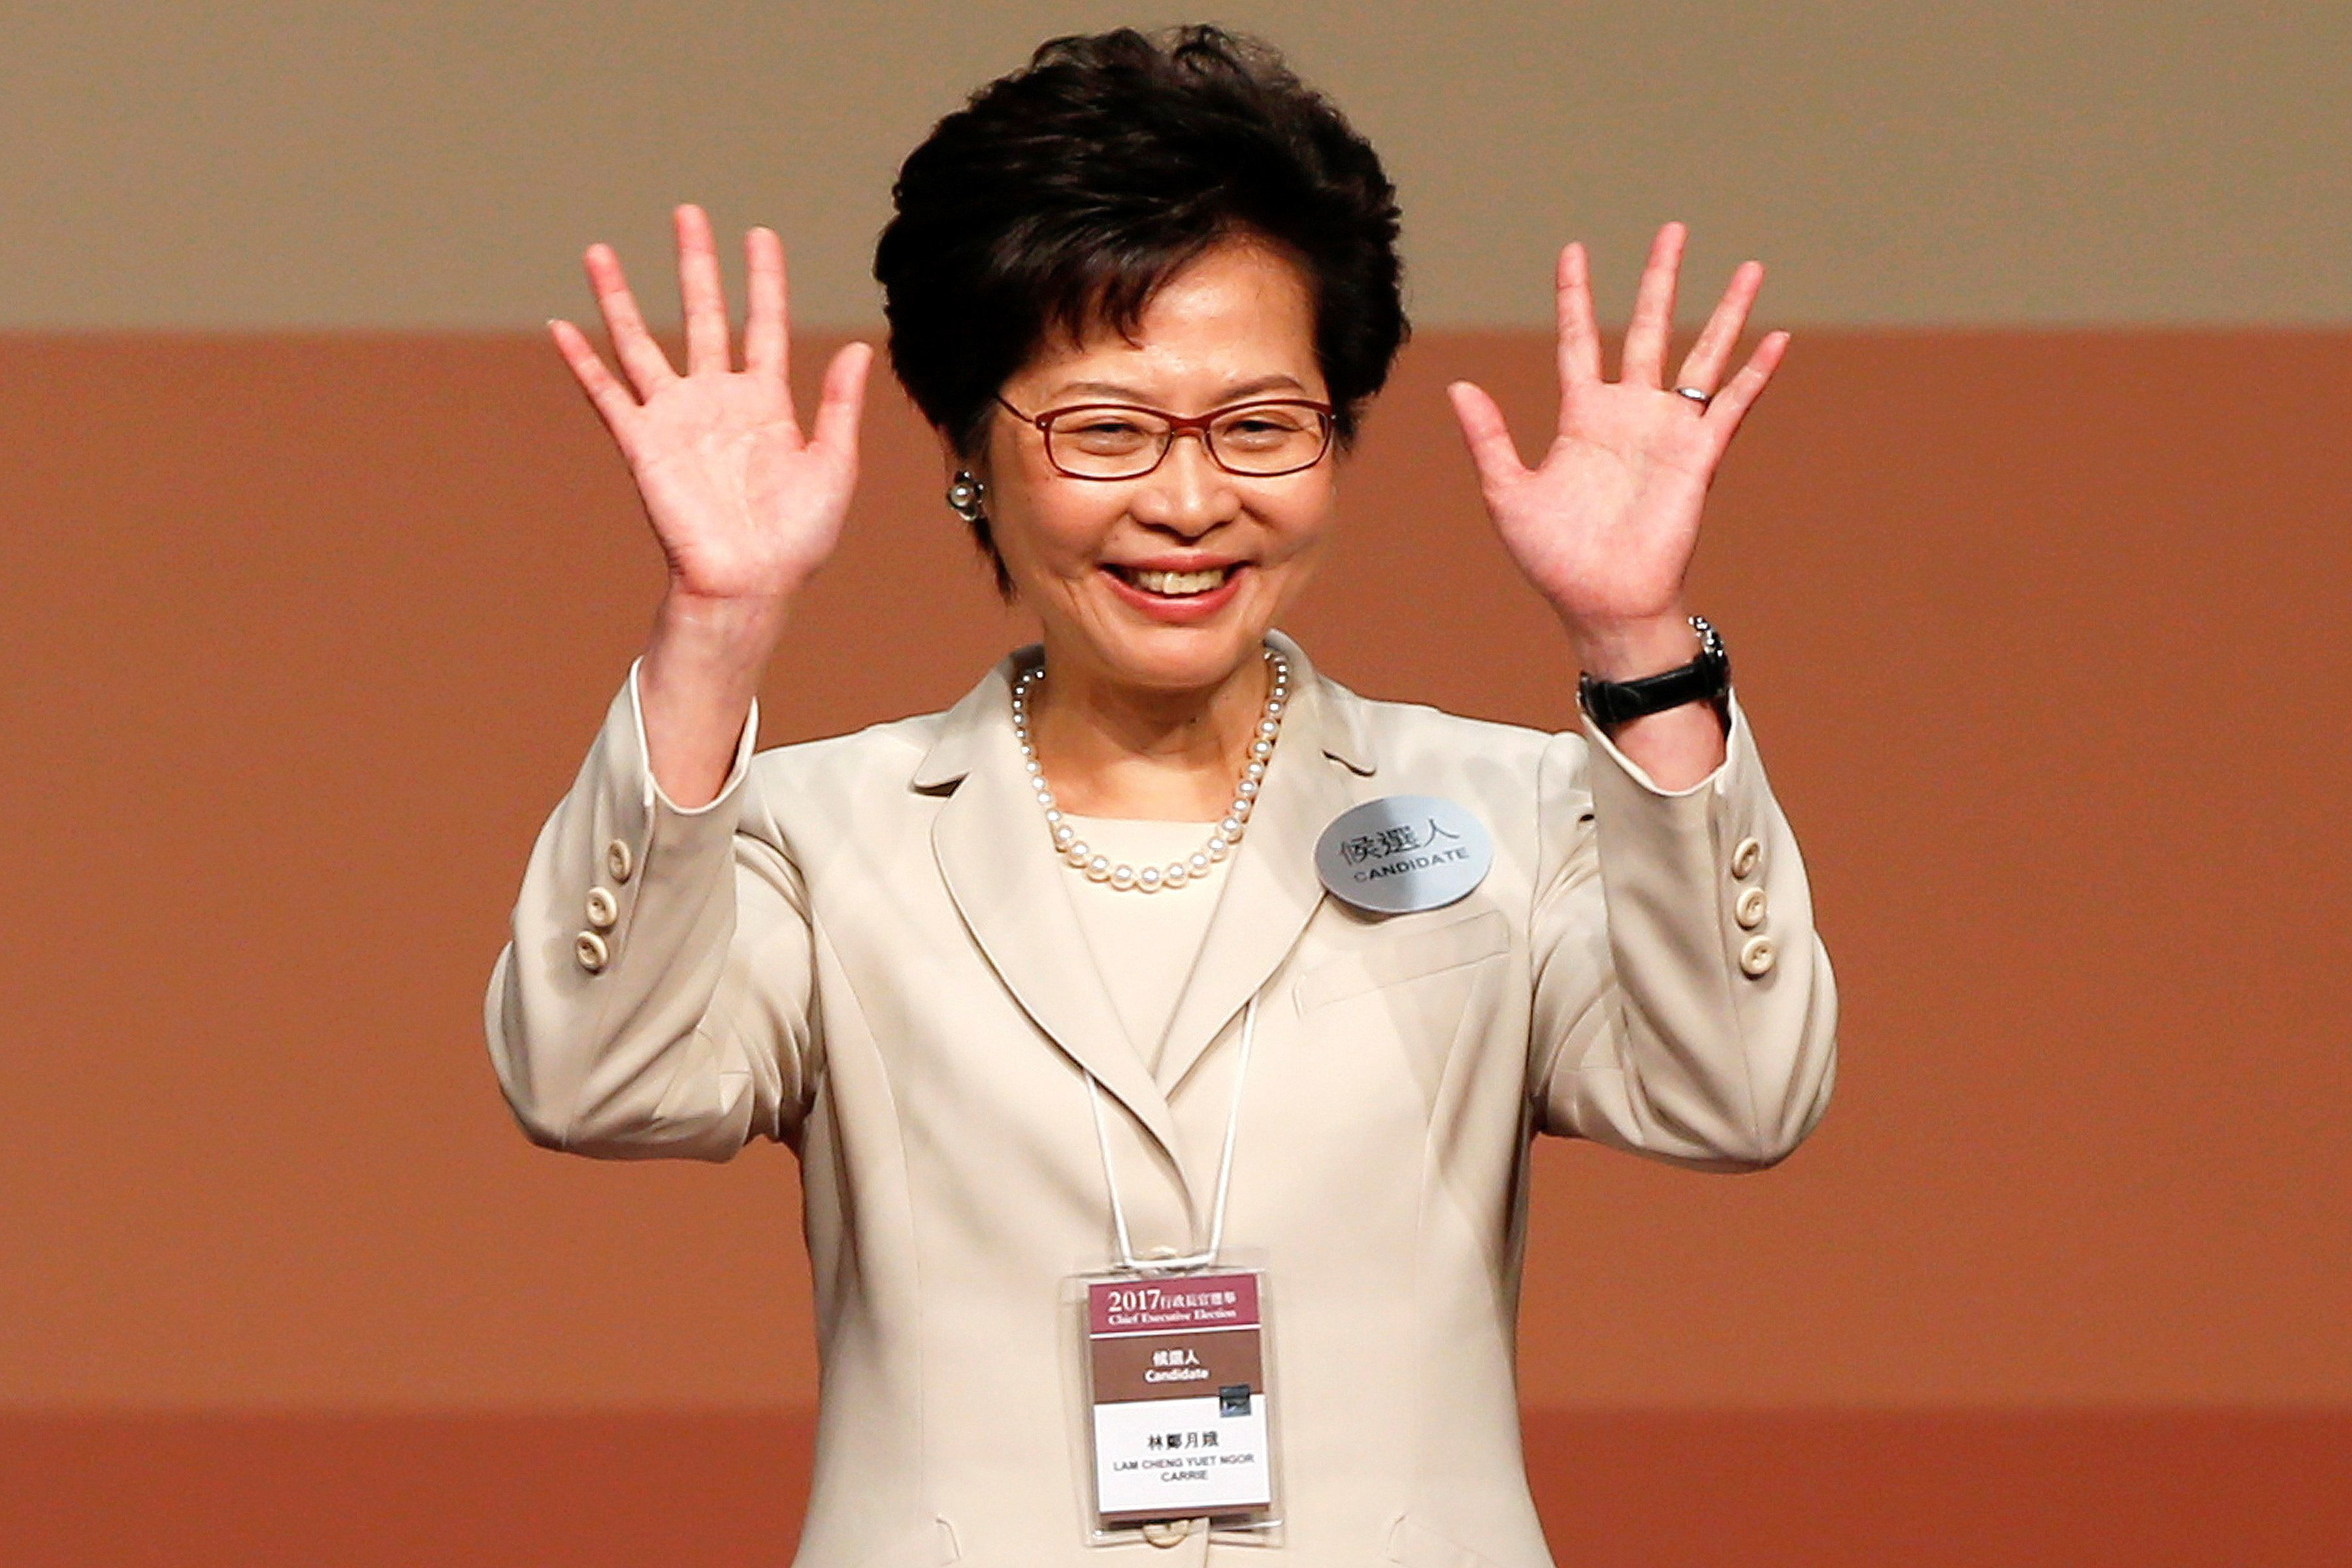 Carrie Lam waves after she won the election for Hong Kong's Chief Executive in Hong Kong, China March 26, 2017. (REUTERS/Bobb